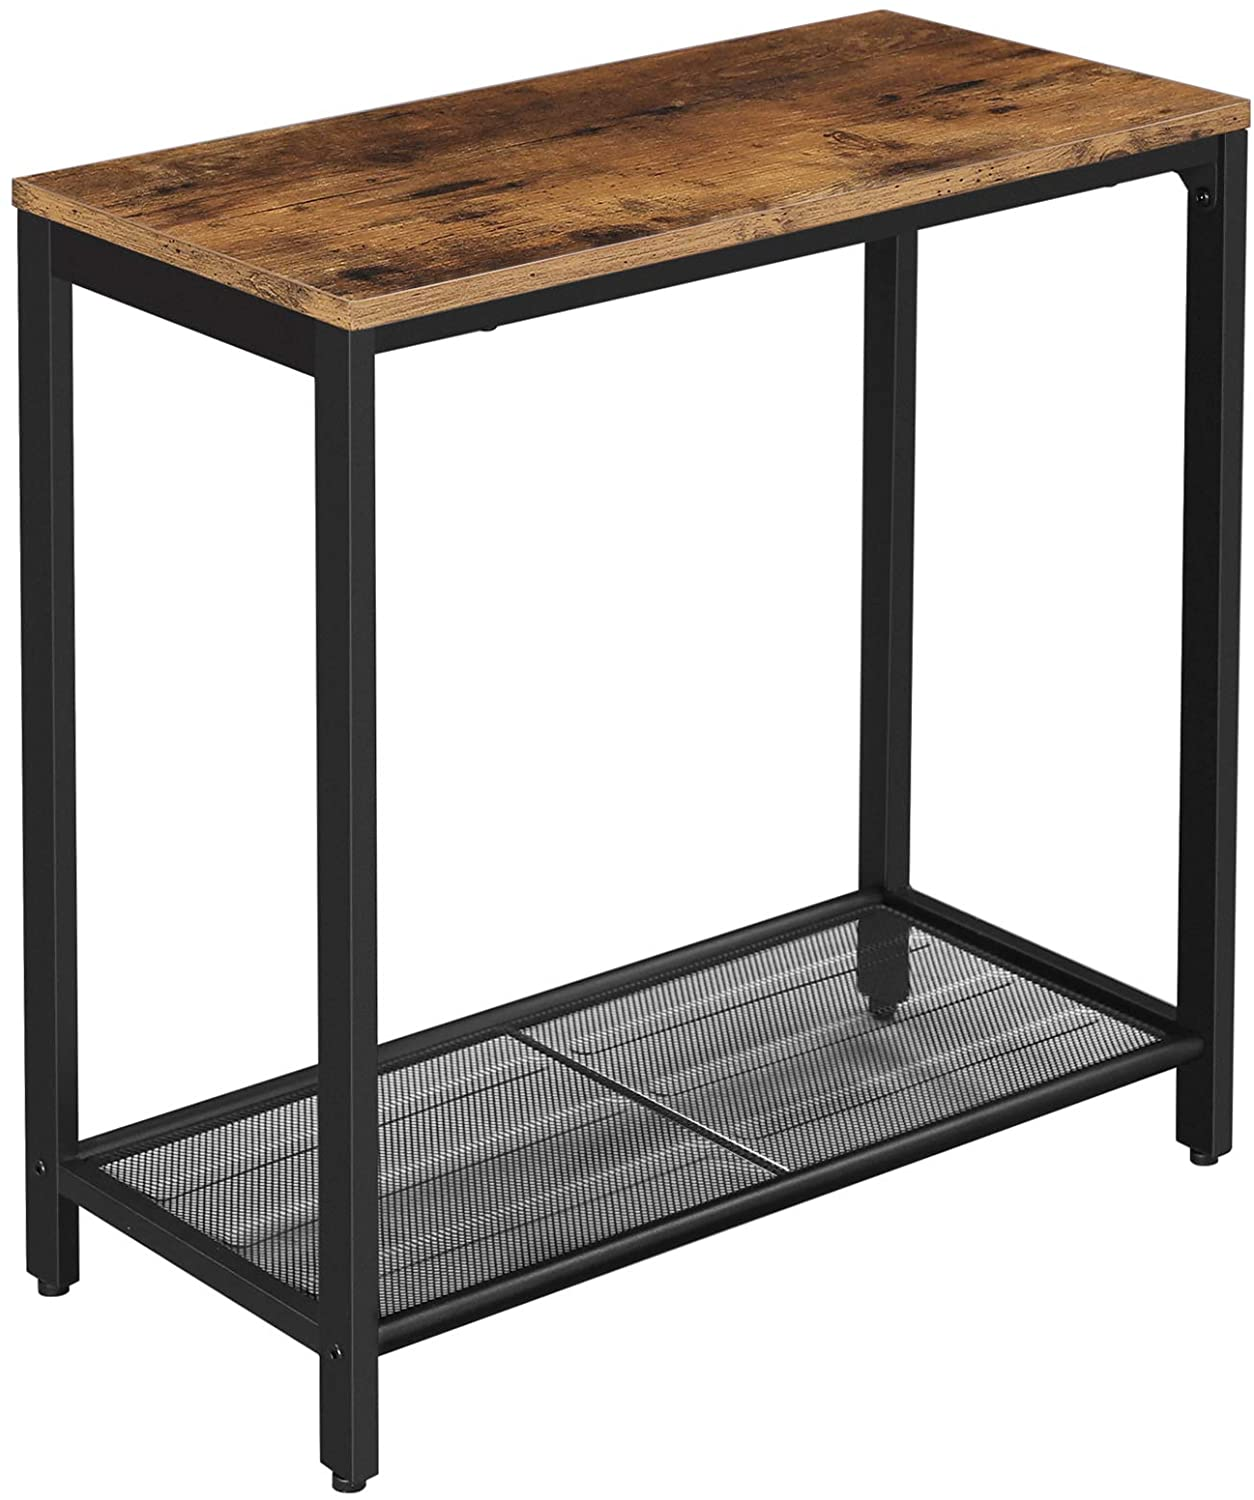 Shop hawkinswoodshop.com for solid wood & metal modern, traditional, contemporary, industrial, custom, rustic, and farmhouse furniture including our Ryan Mesh Shelf End Table.  Enjoy free nationwide shipping, help with the fight against hunger in the US, and support a family owned and operated business that helps puts food on the table for folks in rural Northern California.